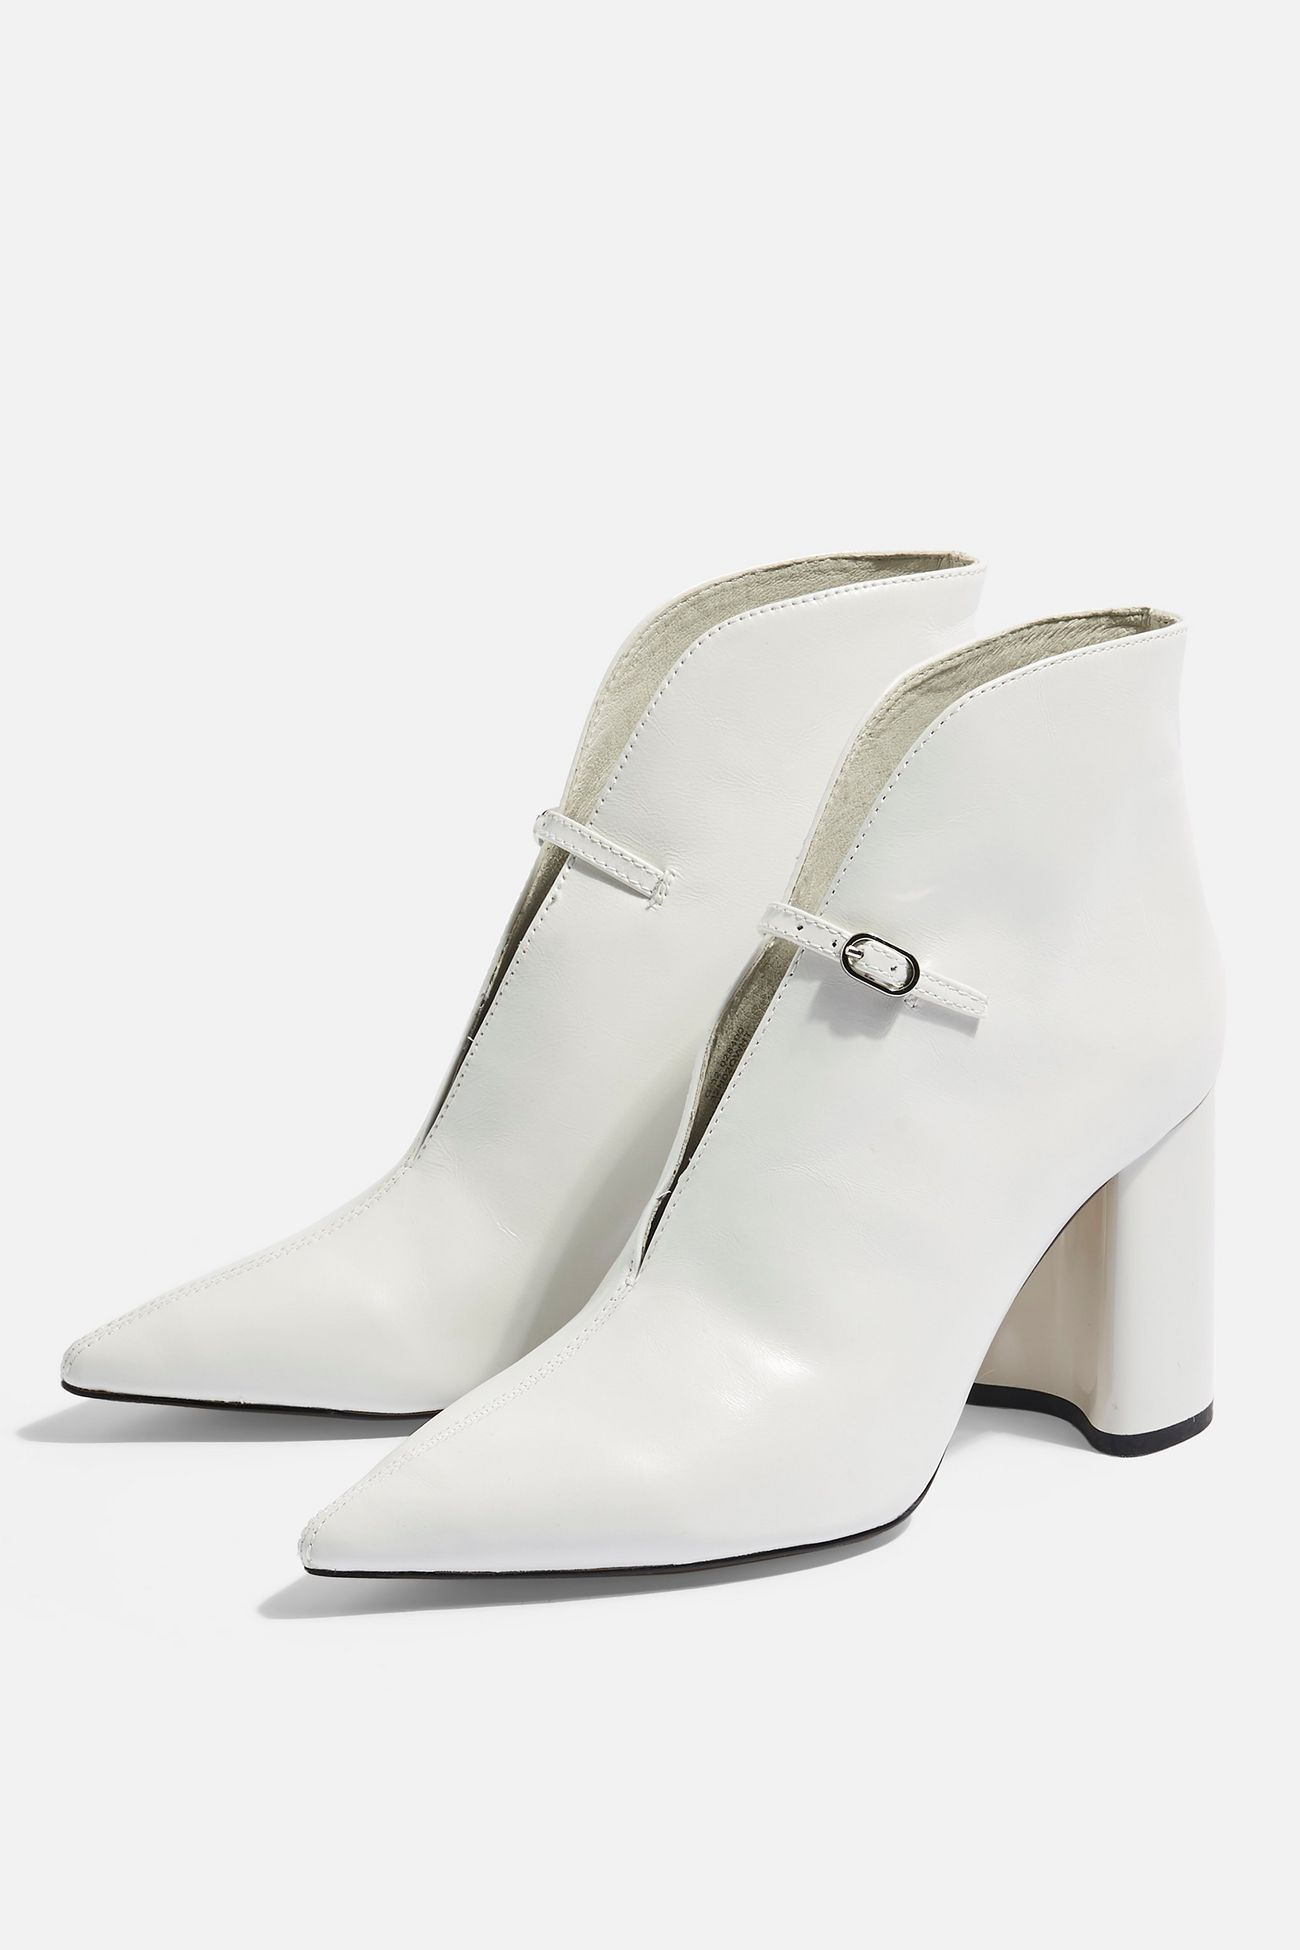 Halo High Ankle Boots